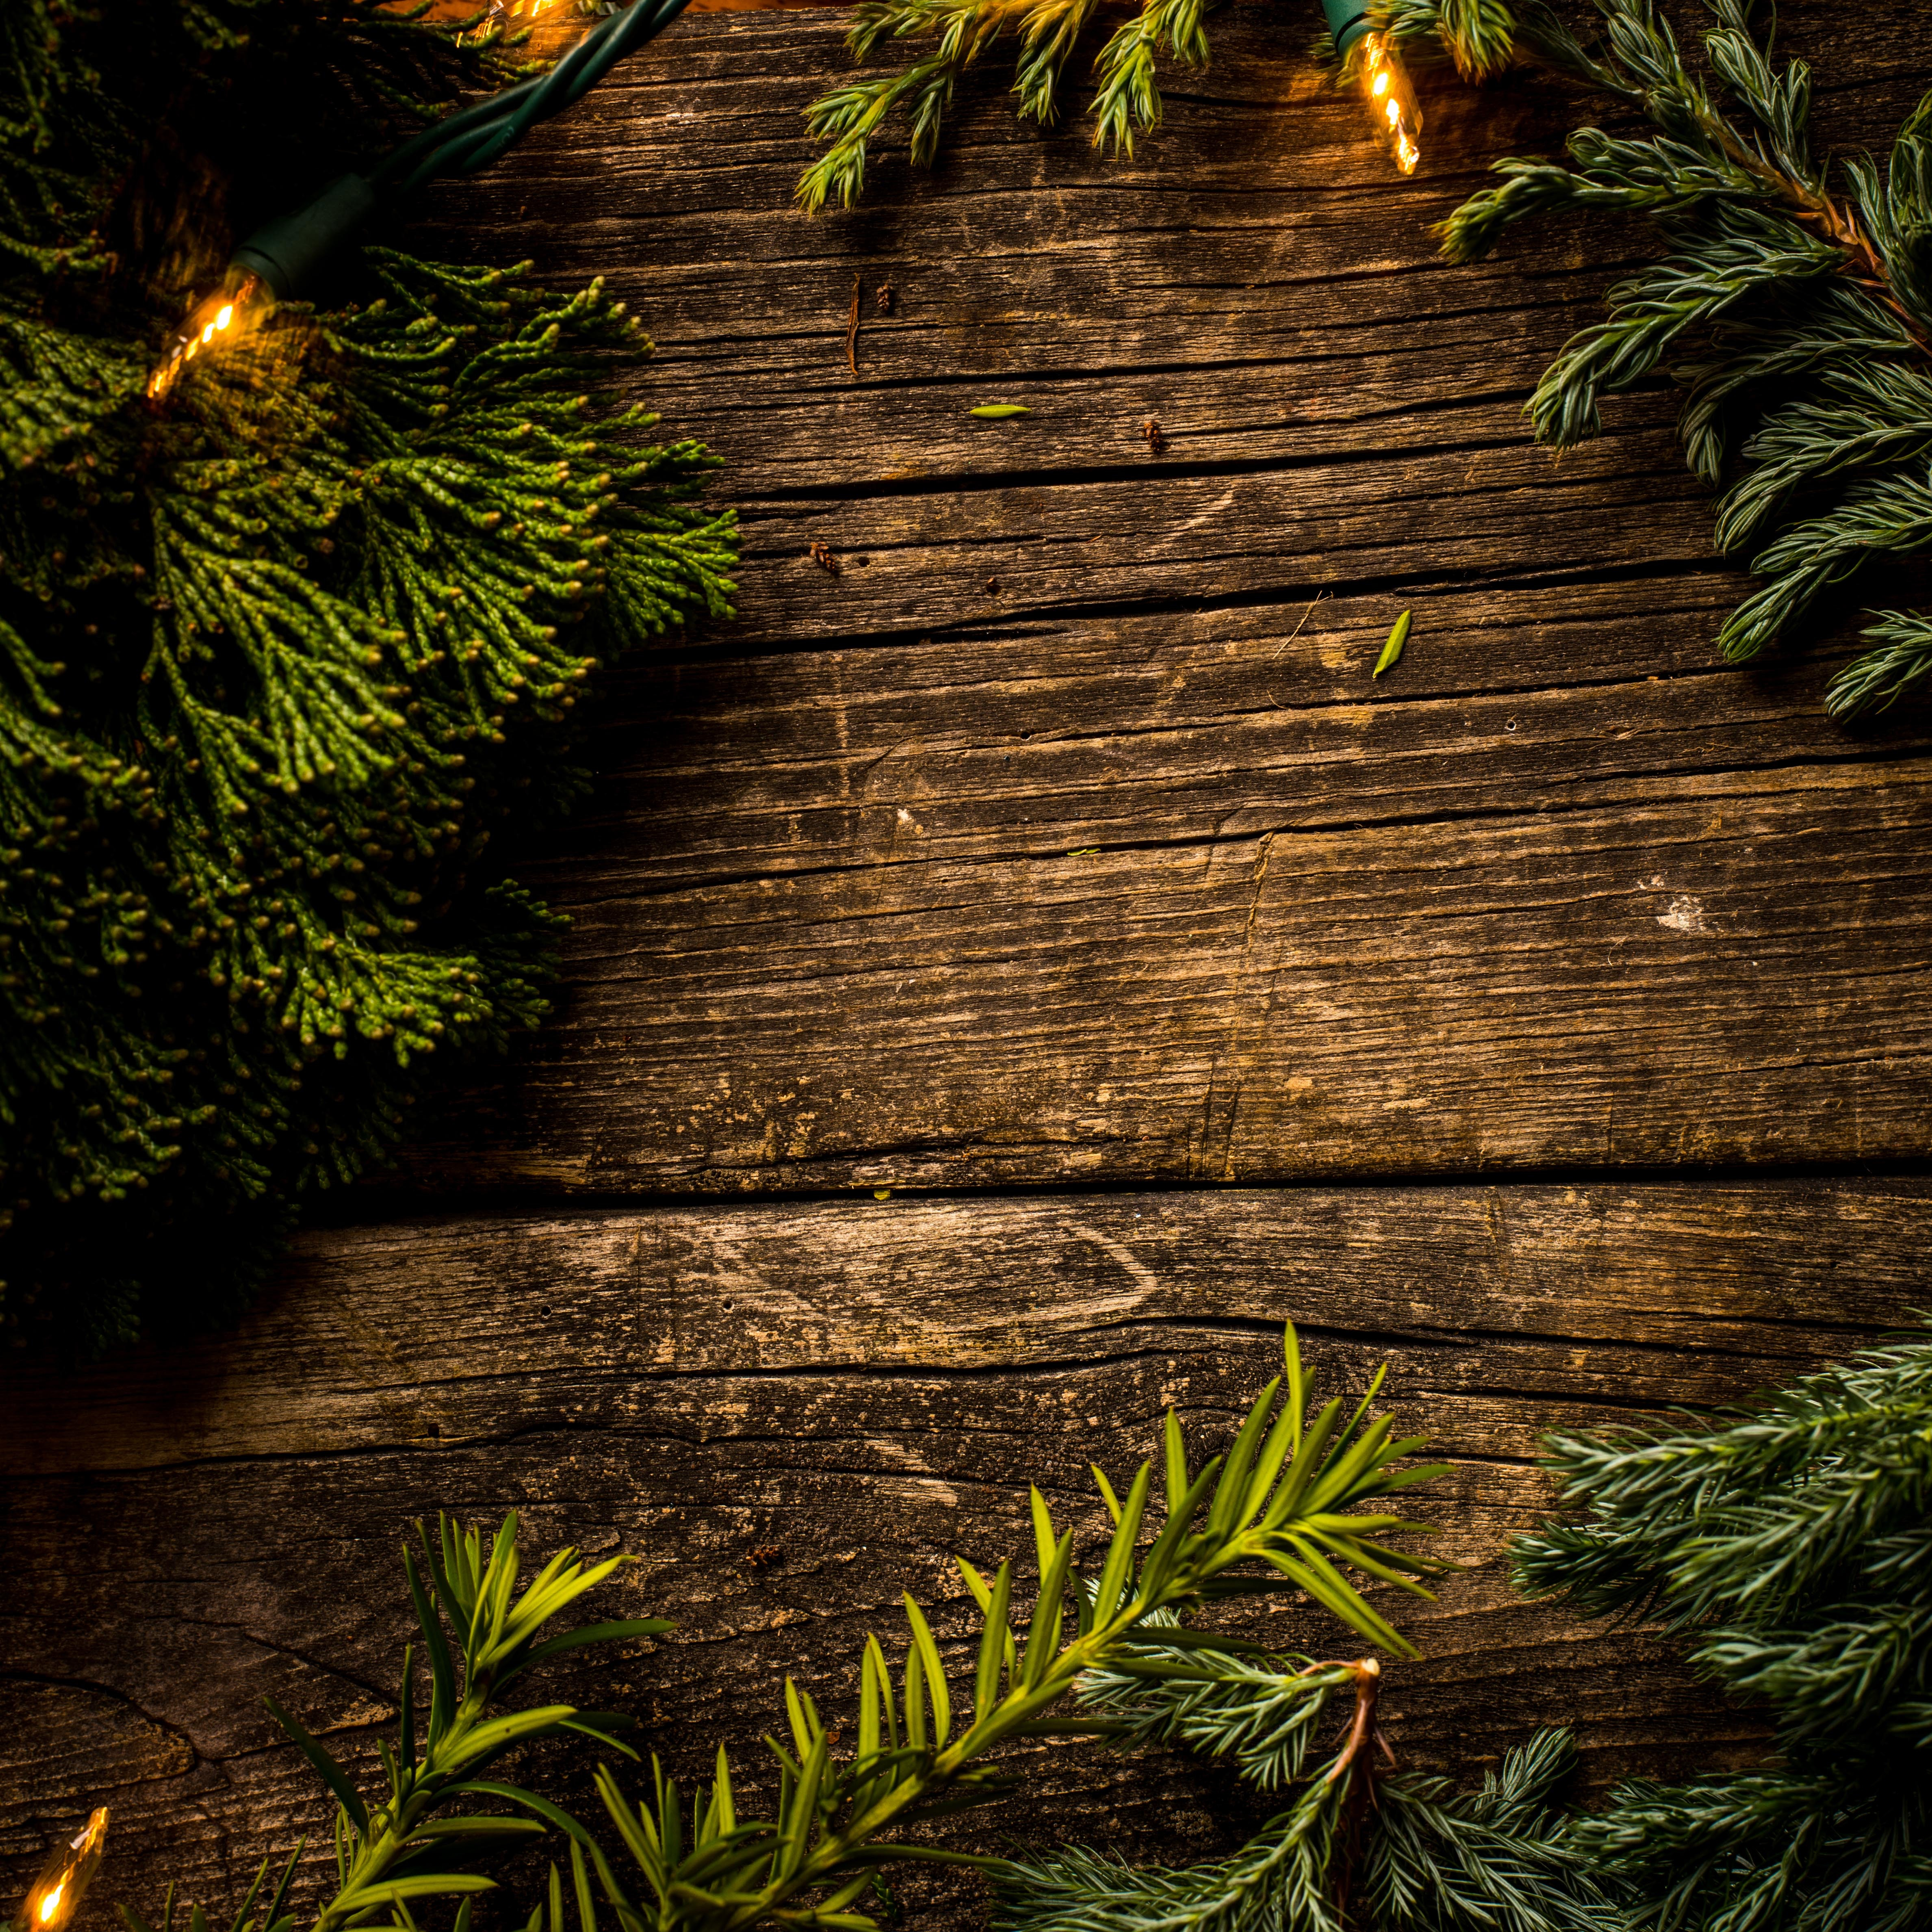 Plants on top of the Wooden Surface, Branch, Color, Coniferous, Conifers, HQ Photo